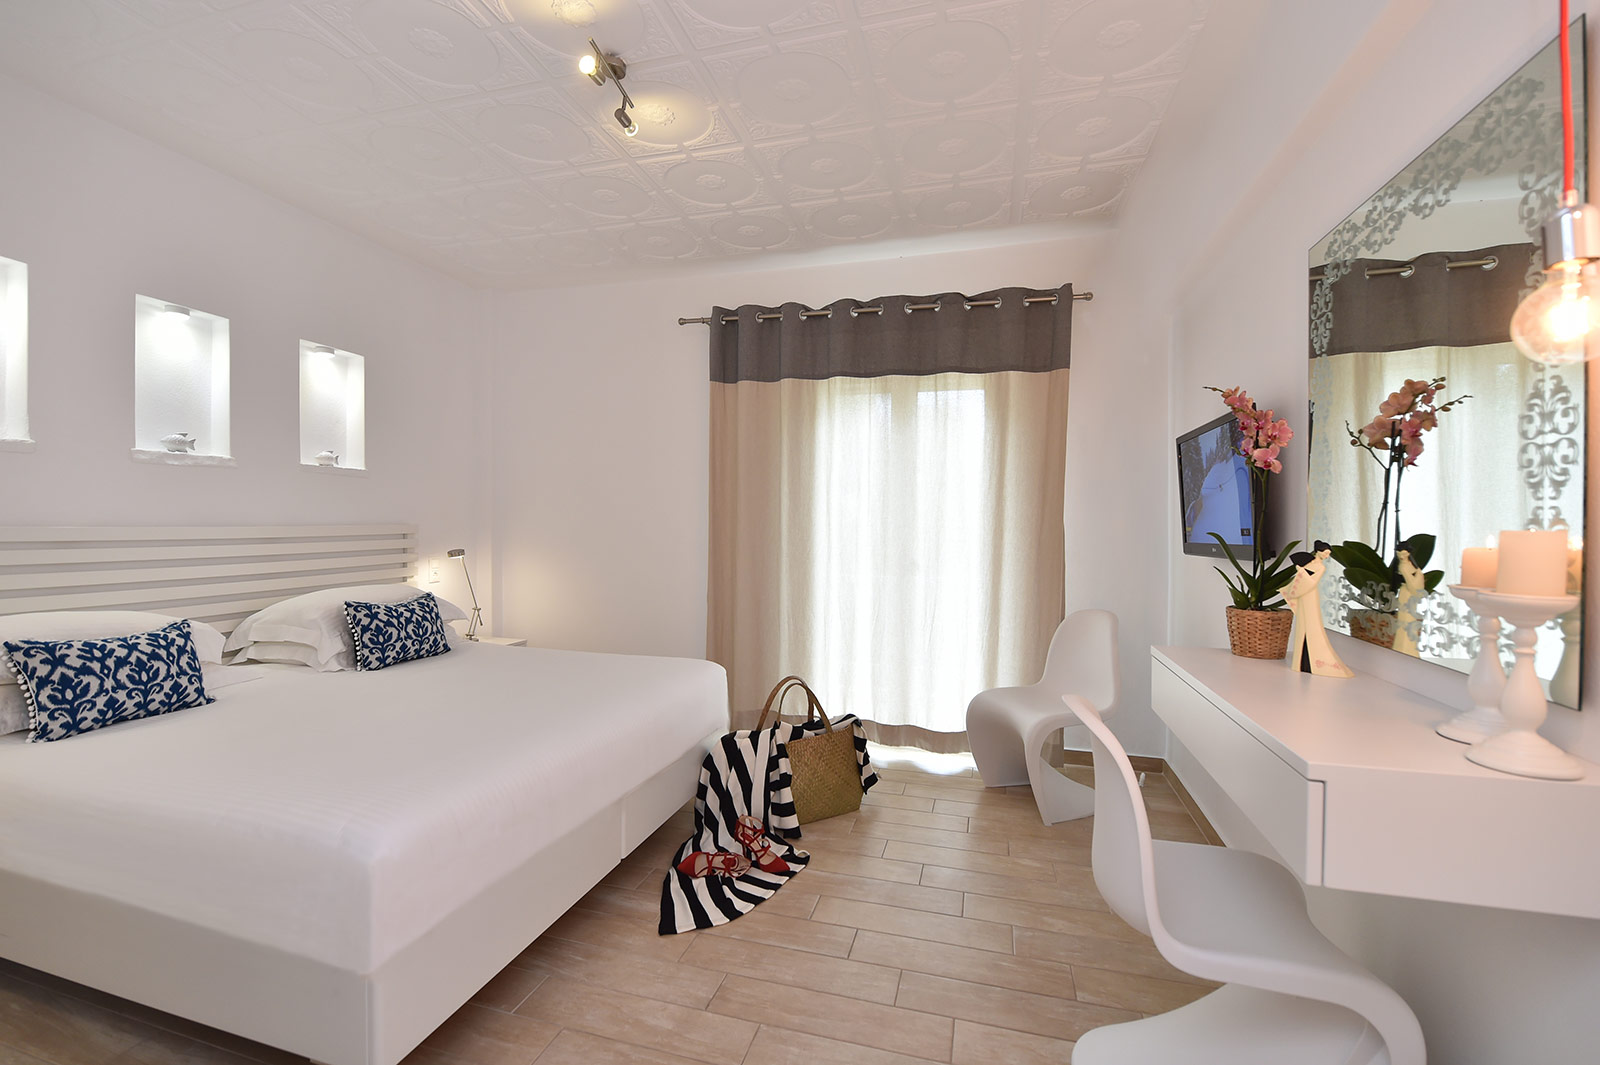 apollon boutique hotel a small charming hotel in paros